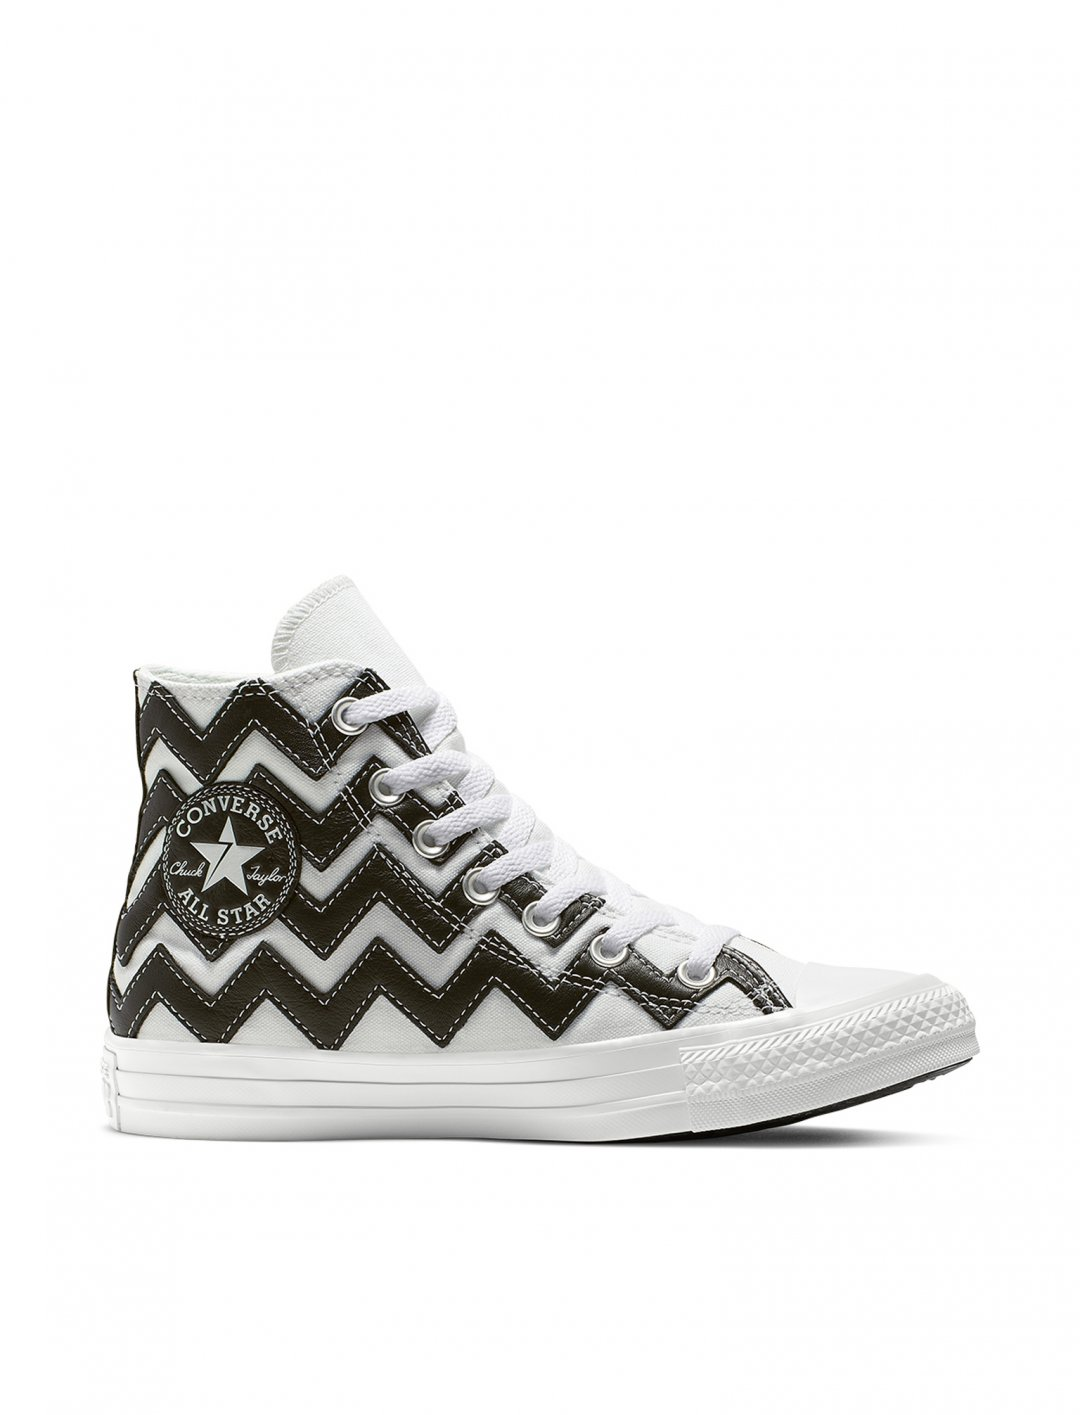 VLTG High Top Trainers  Converse